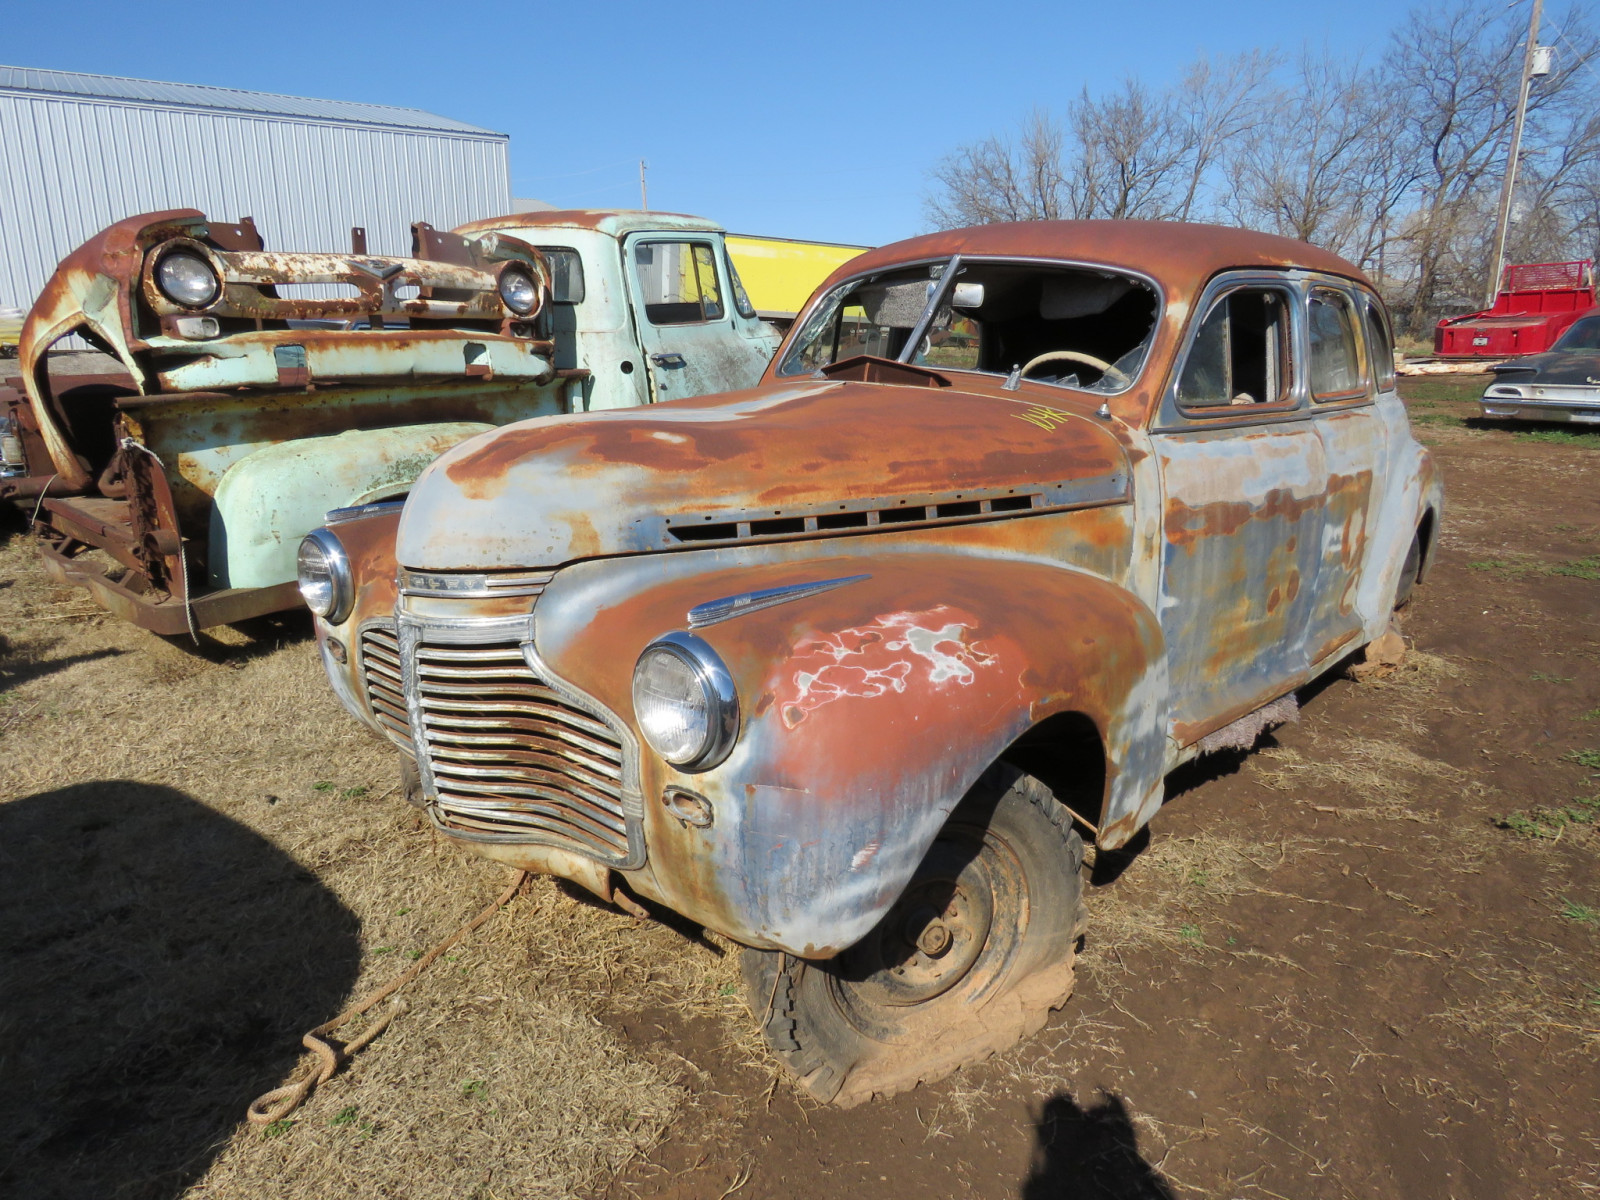 1941 Chevrolet 4dr Sedan Rolling Body - Image 1